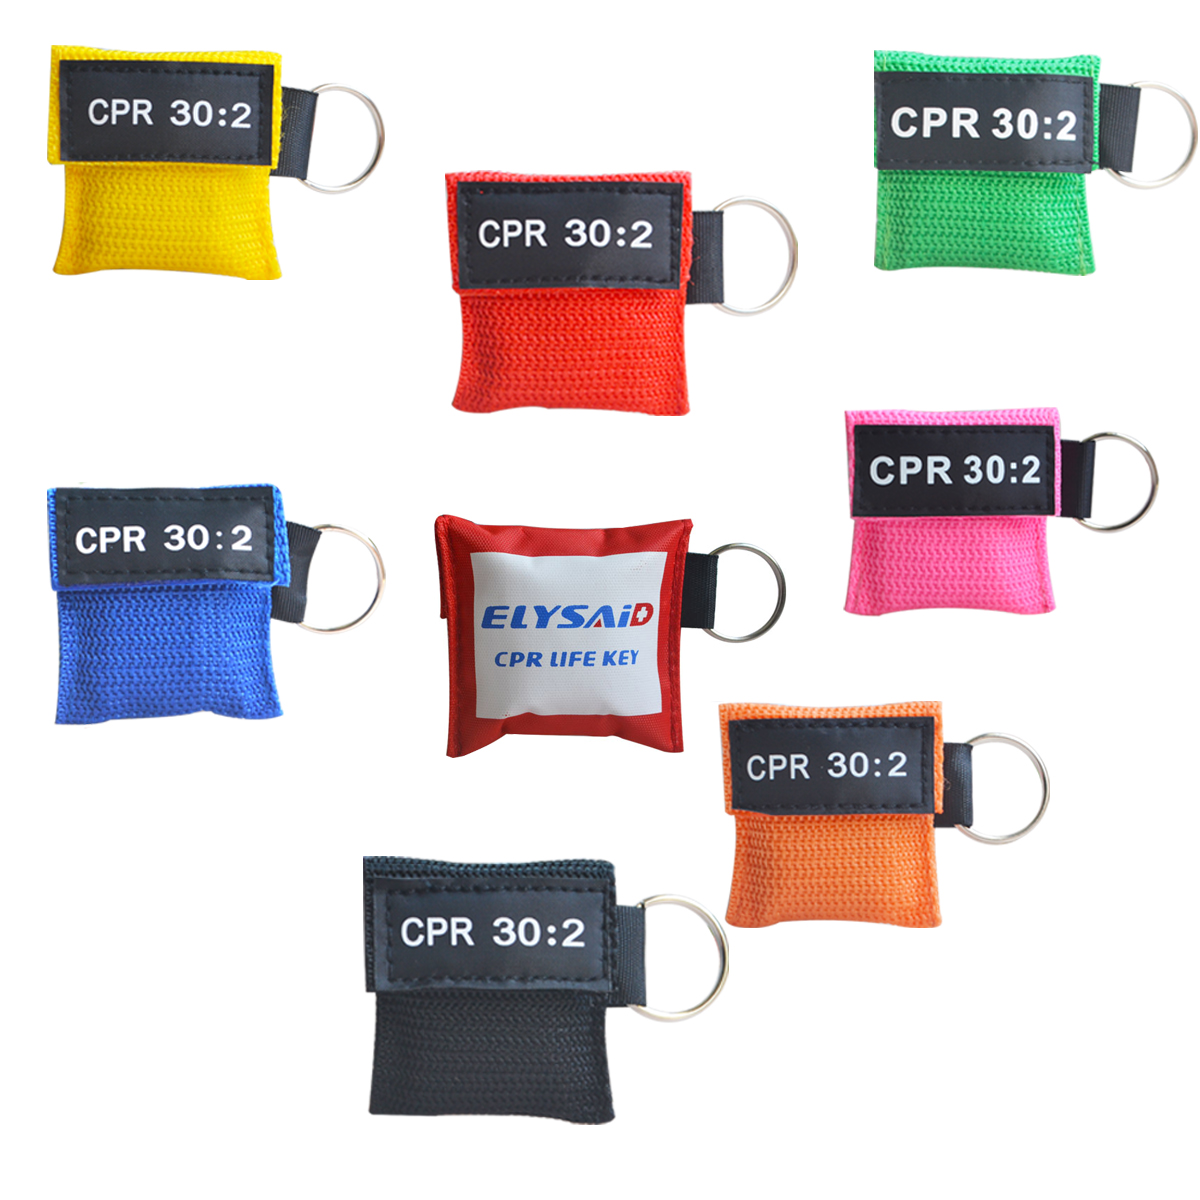 100Pcs/Lot Optional Color CPR Resuscitator Mask CPR Face Shield Mouth-to-mouth Breathing Key Ring CPR 30:2 Emergency Rescue Kit100Pcs/Lot Optional Color CPR Resuscitator Mask CPR Face Shield Mouth-to-mouth Breathing Key Ring CPR 30:2 Emergency Rescue Kit